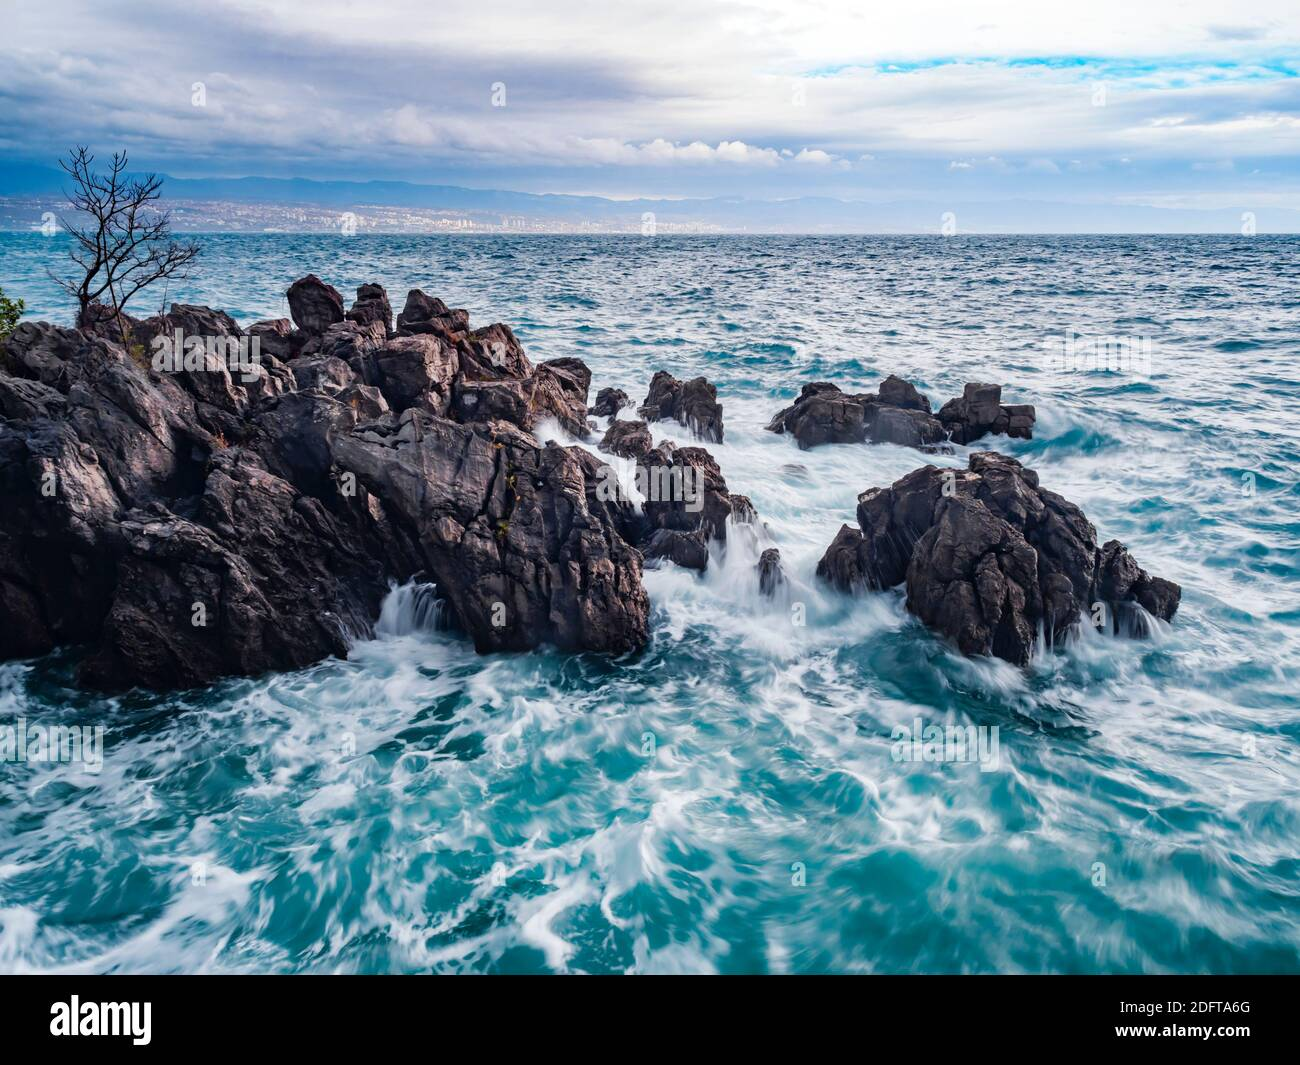 Arty aka artistic view longish exposure severe stormy storm sea waves Lovran rocky rocks coastline Croatia Stock Photo